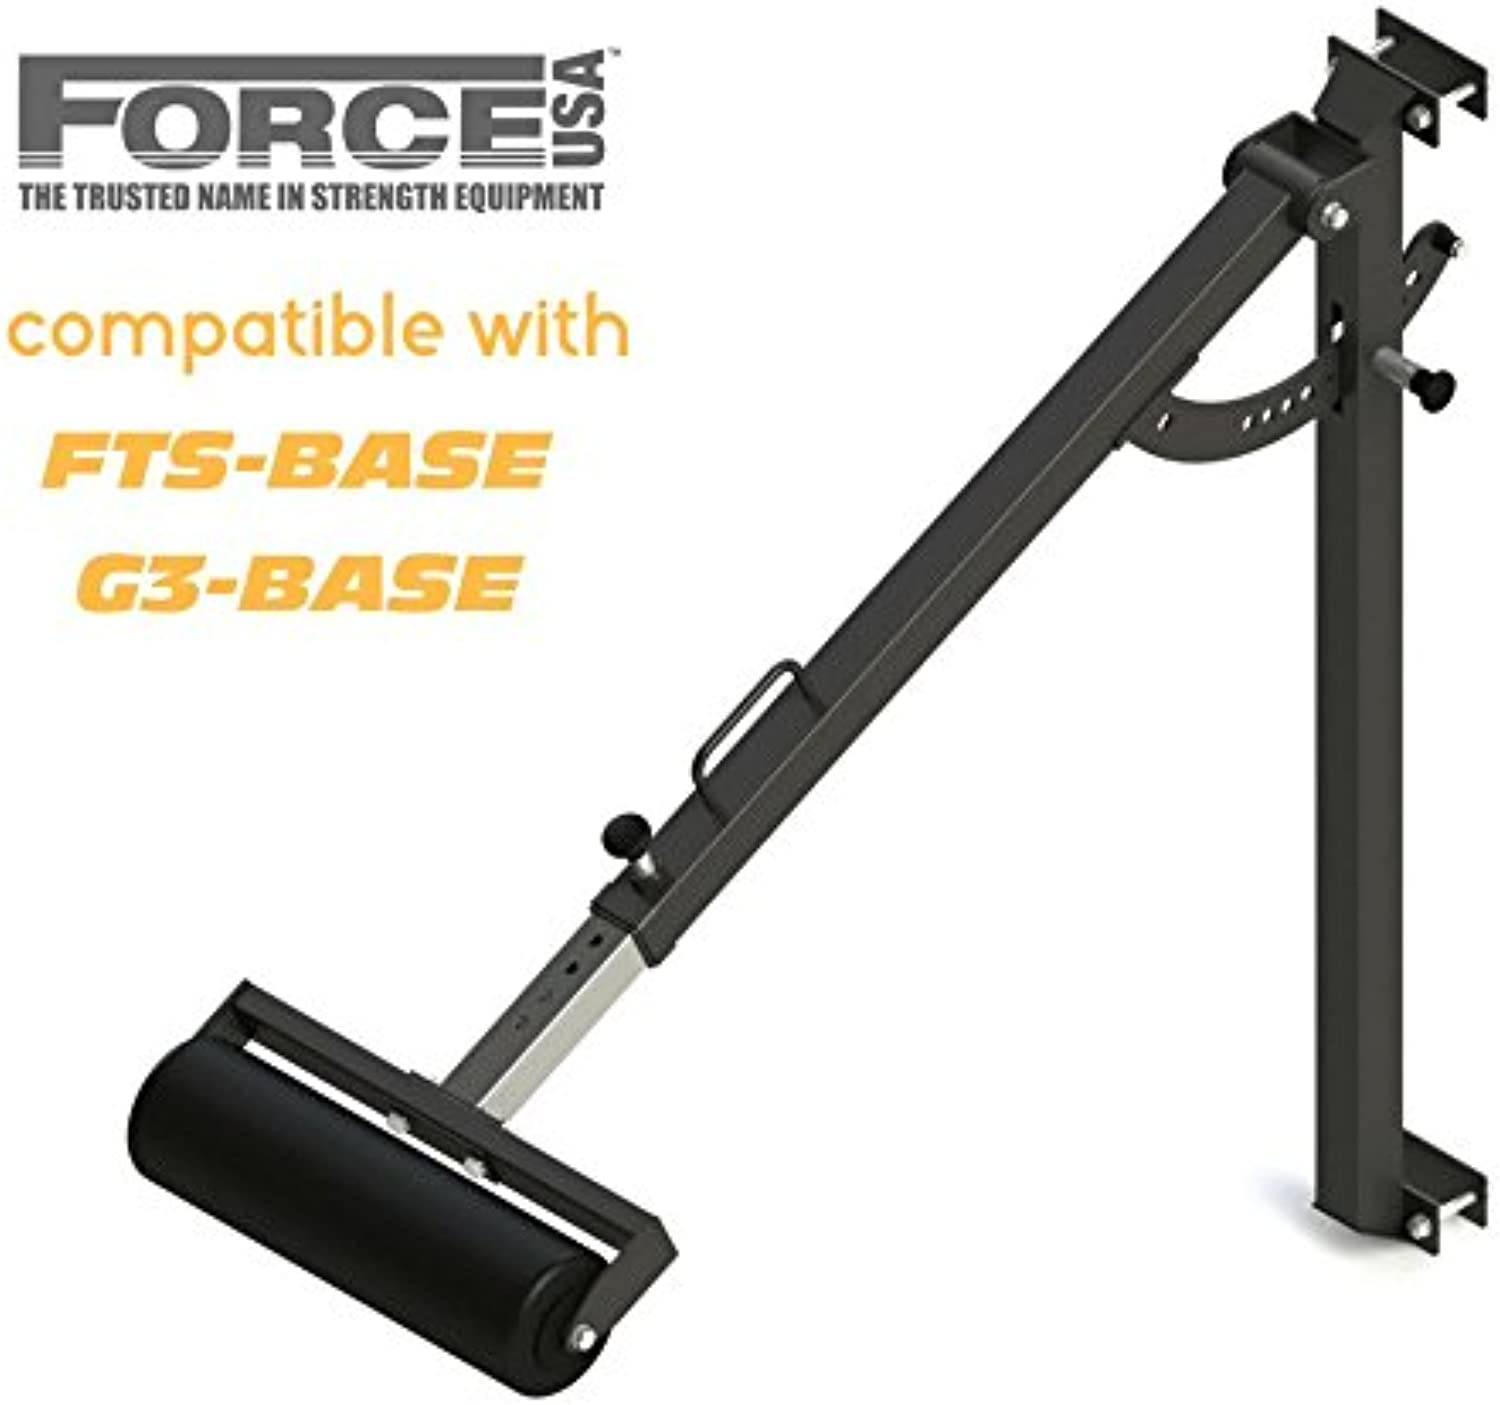 Force USA Fully Adjustable Stabilizer Bar (Compatible with FFTSB & FG3BASE)